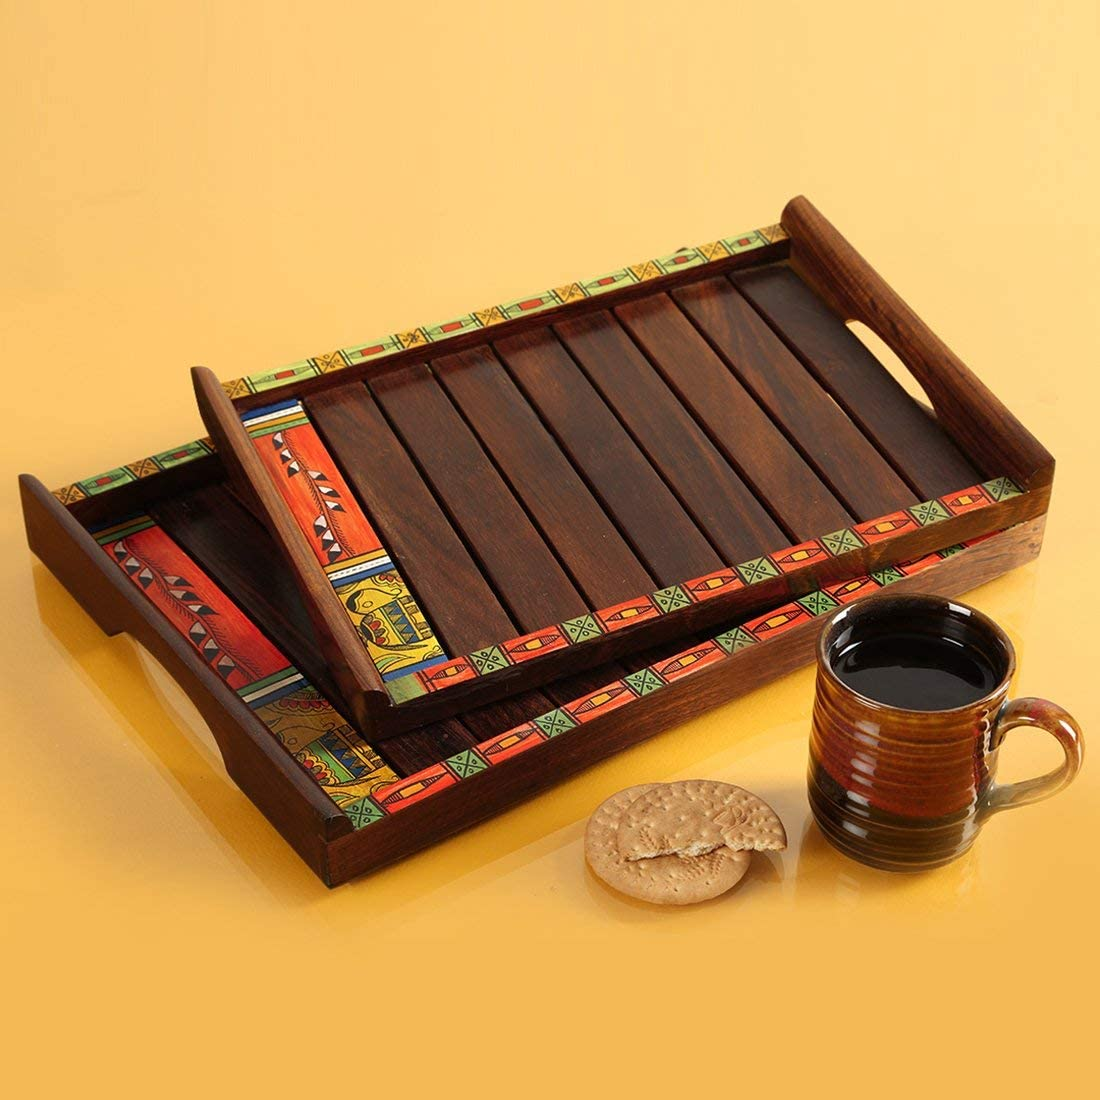 Rang Resha Madhubani Handpainted Trays in Sheesham Wood (Set of 2) - Trays for Serving Tea Wooden Decorative Kitchen Serving Tray for Snacks Dining Table Office Breakfast Coffee Tea Trays for Party